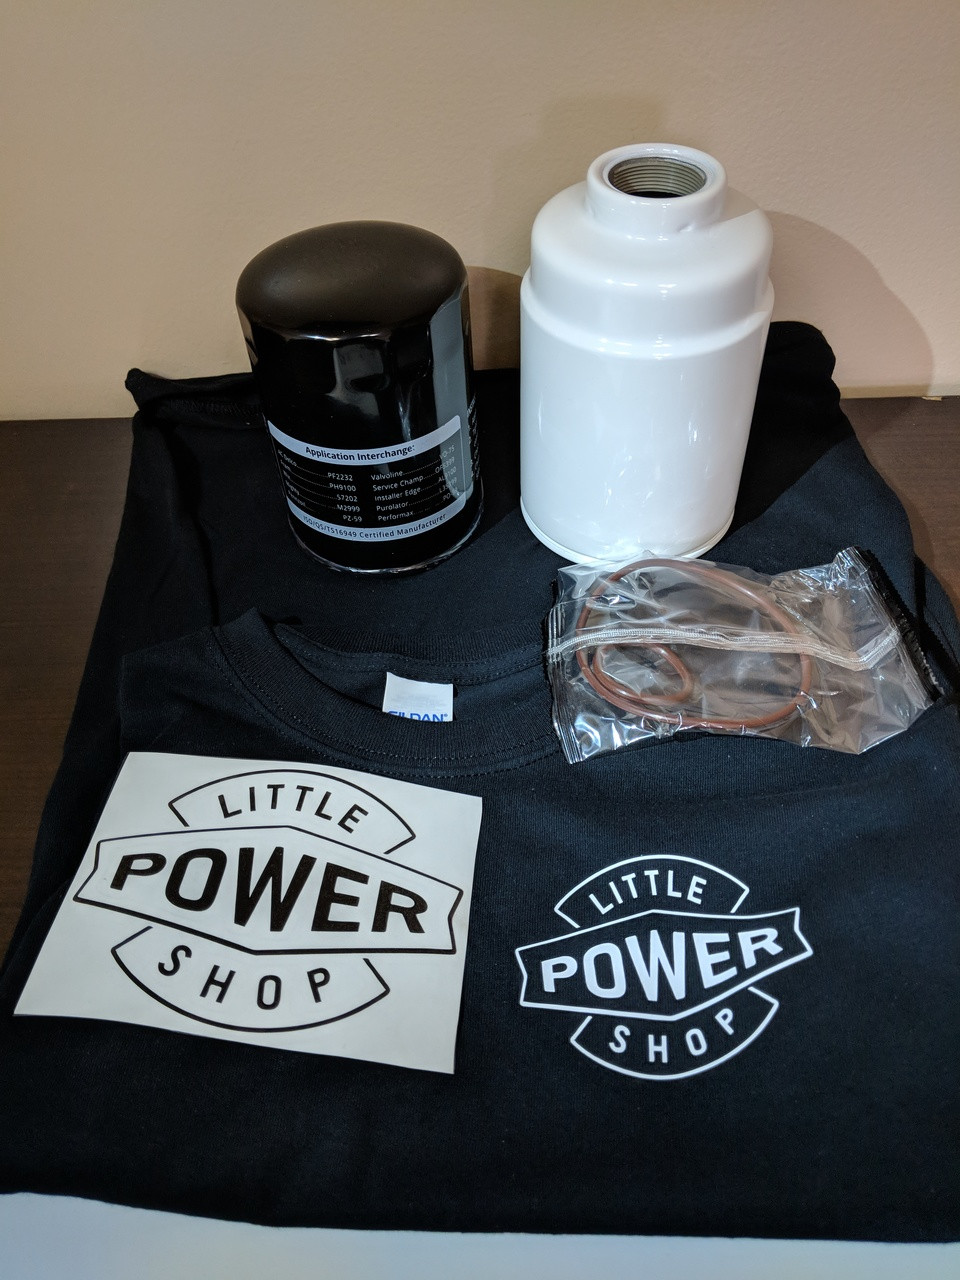 2001 2016 gm 6 6 duramax oil and fuel filter set sale with free t shirt [ 960 x 1280 Pixel ]